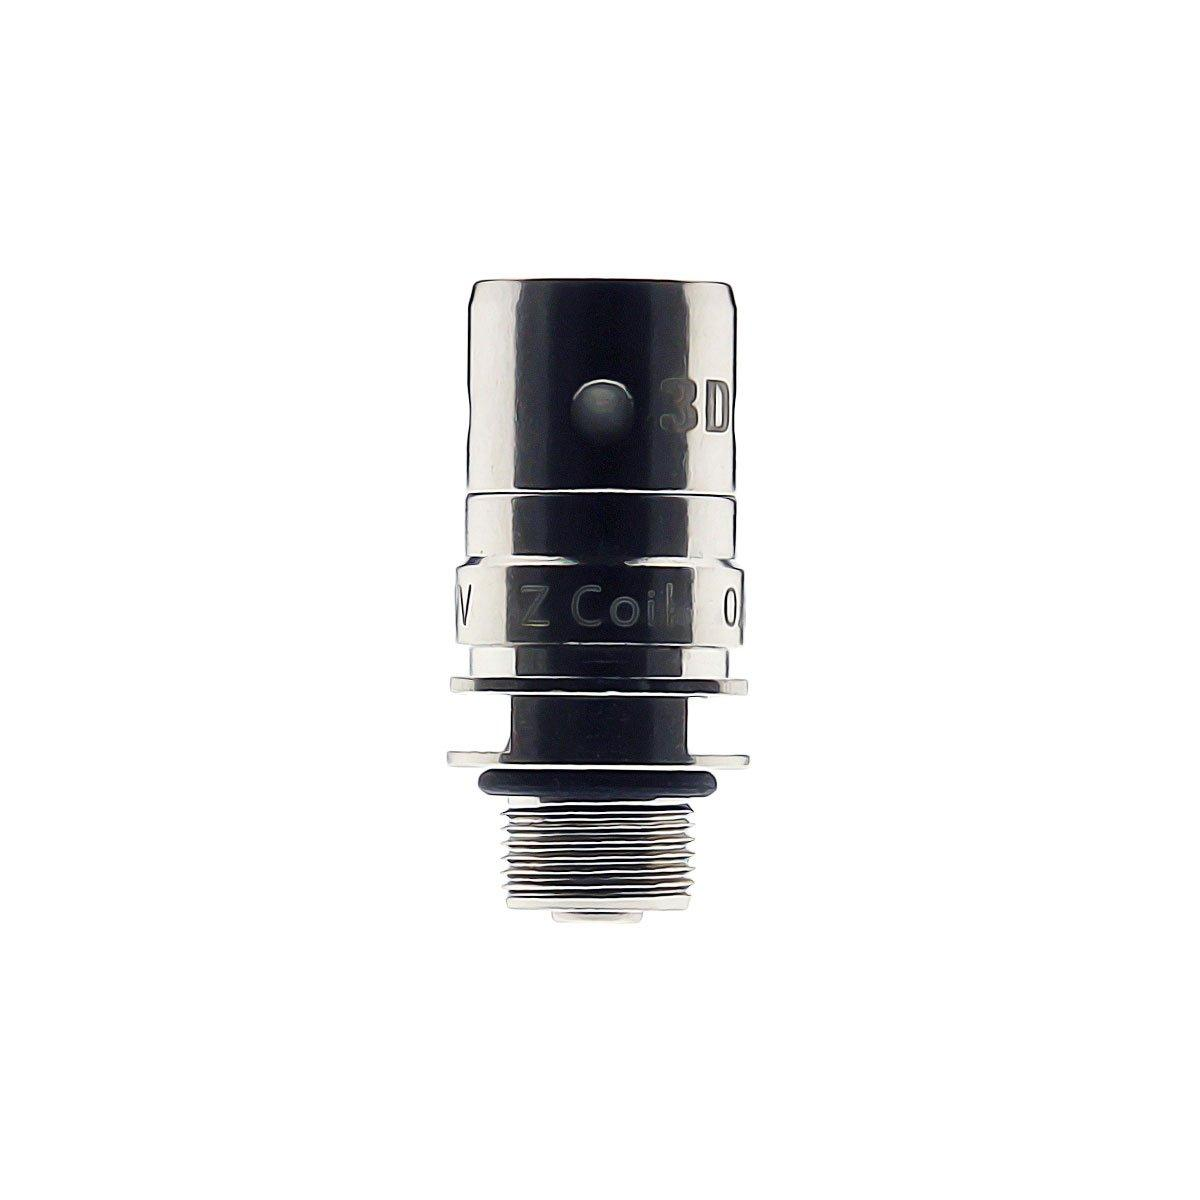 Innokin Z-Coil Replacement Coils